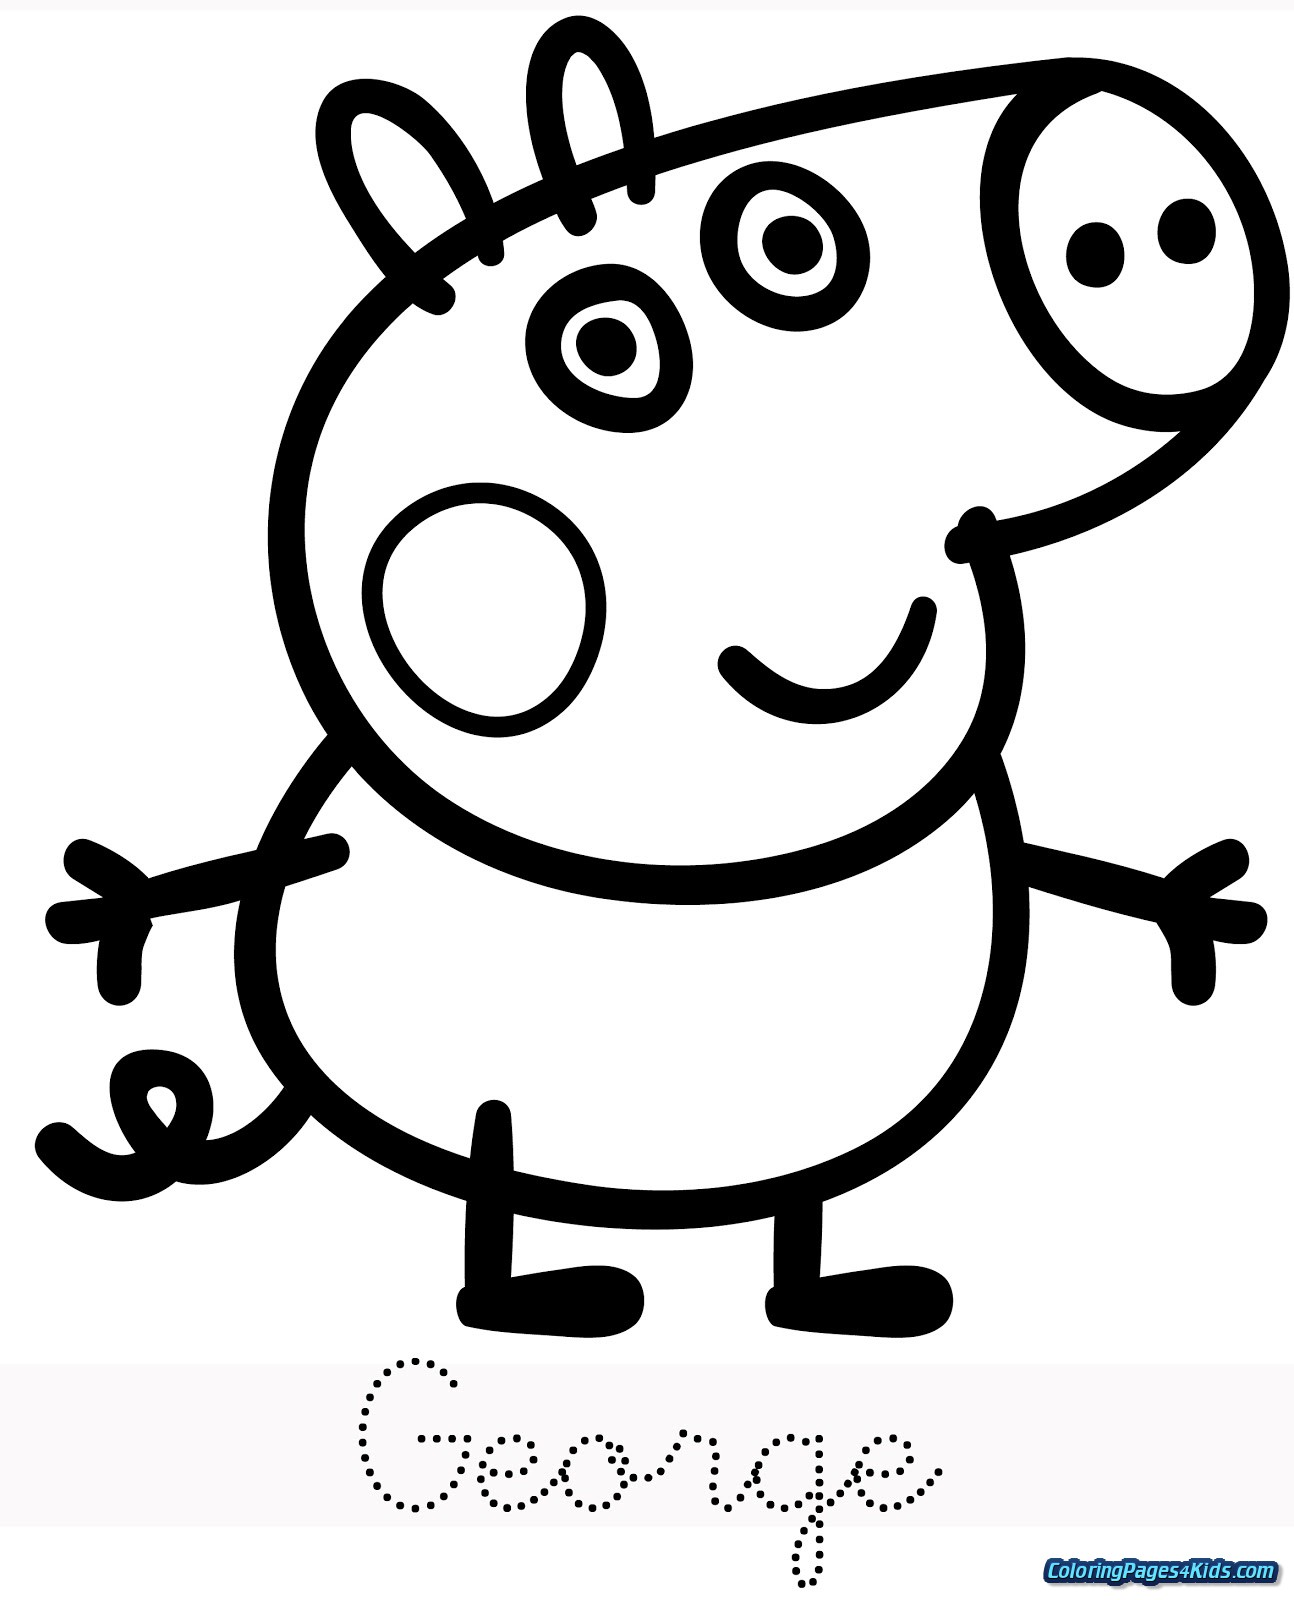 peppa pig colouring pages online peppa pig coloring pages getcoloringpagescom online pages peppa pig colouring